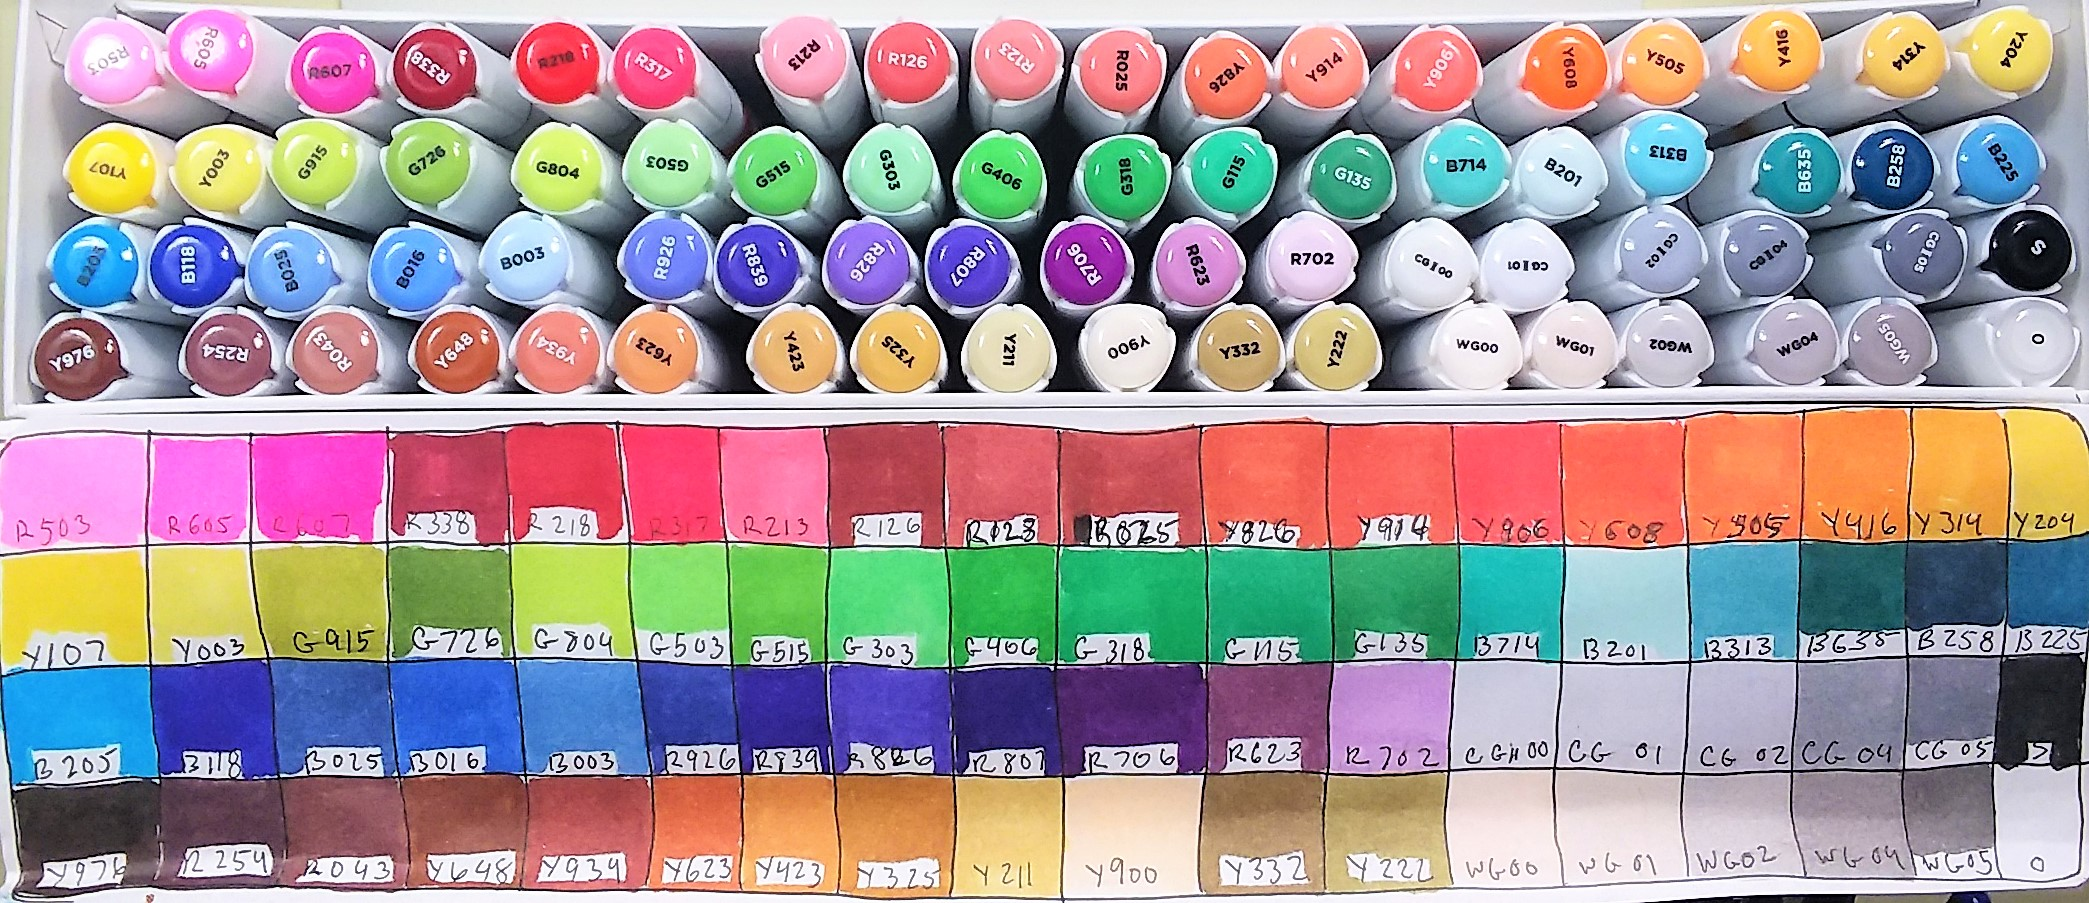 Color with me and learn about markers! Free Image Provided!